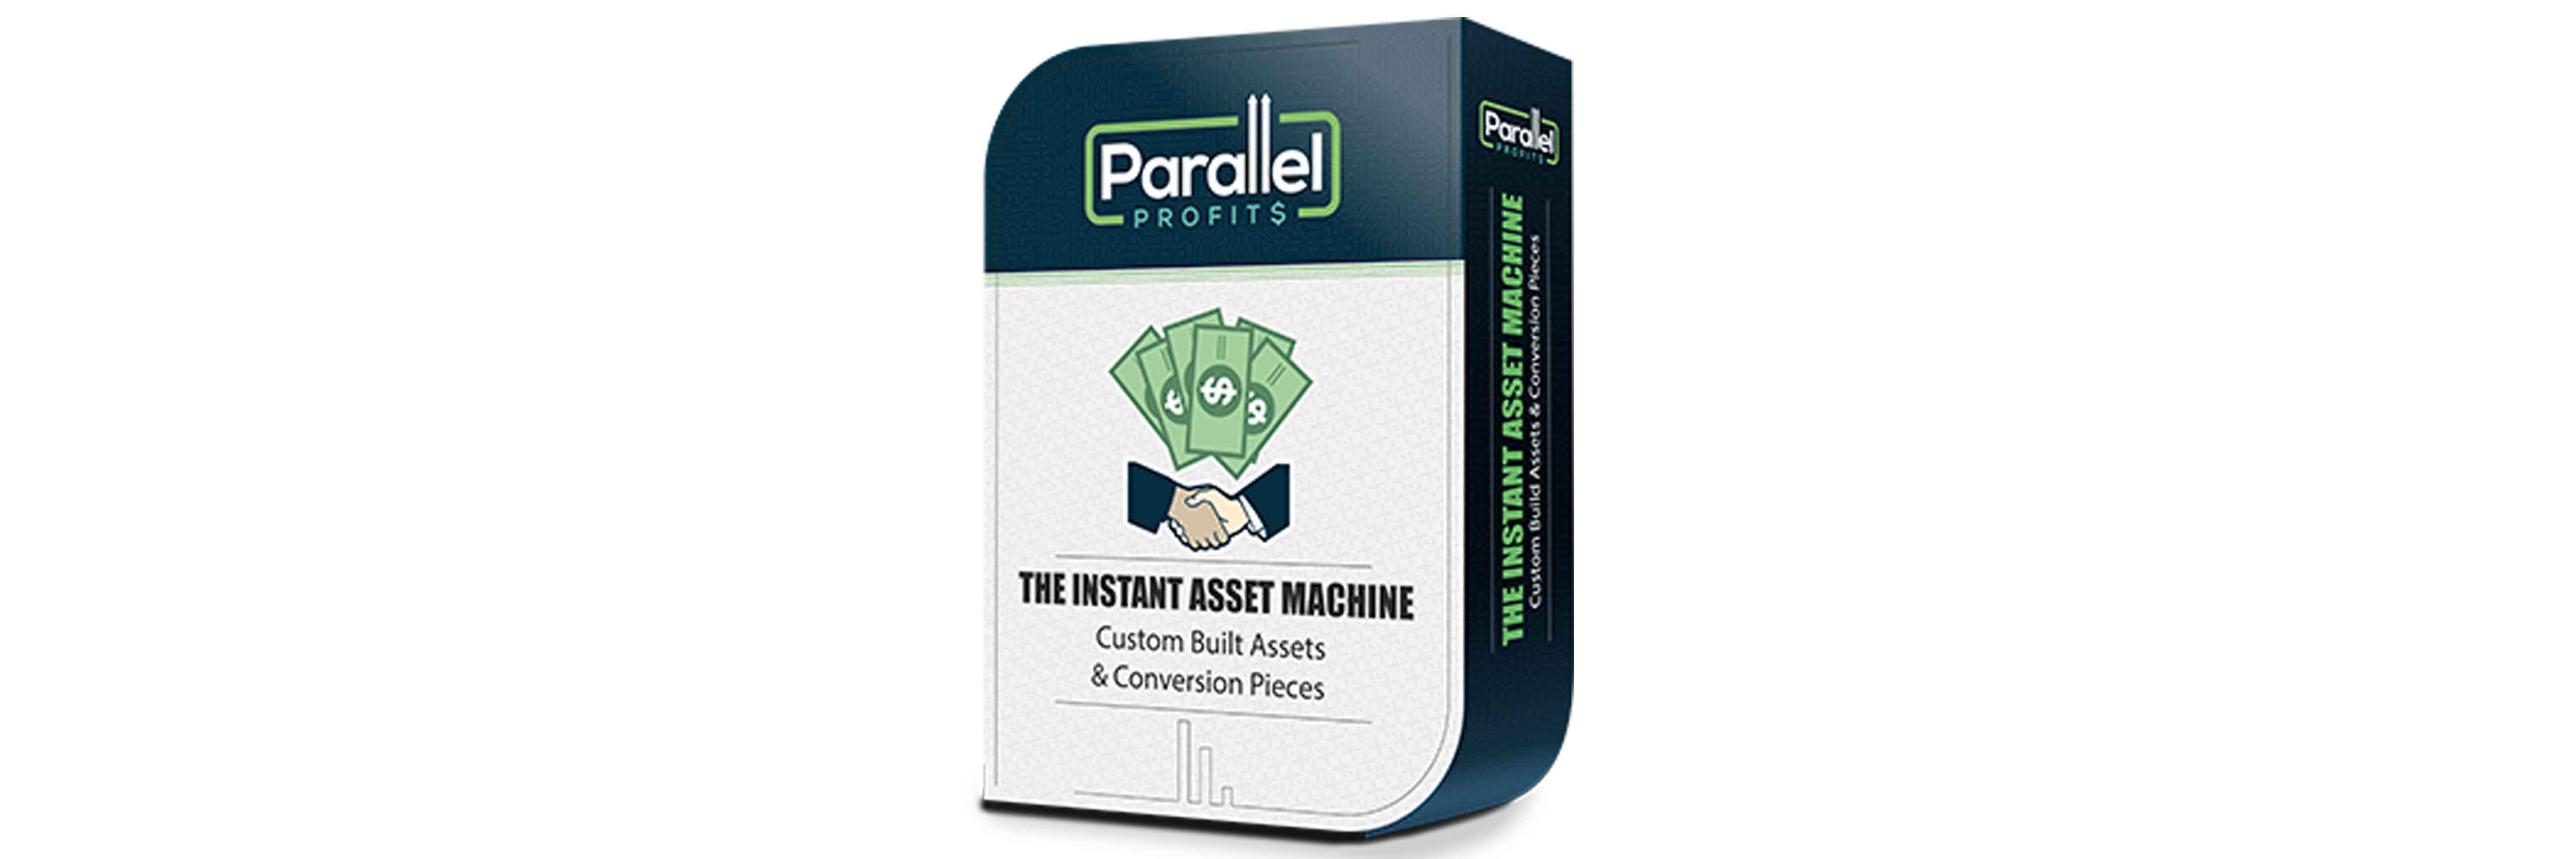 Parallel Profits Free Trial